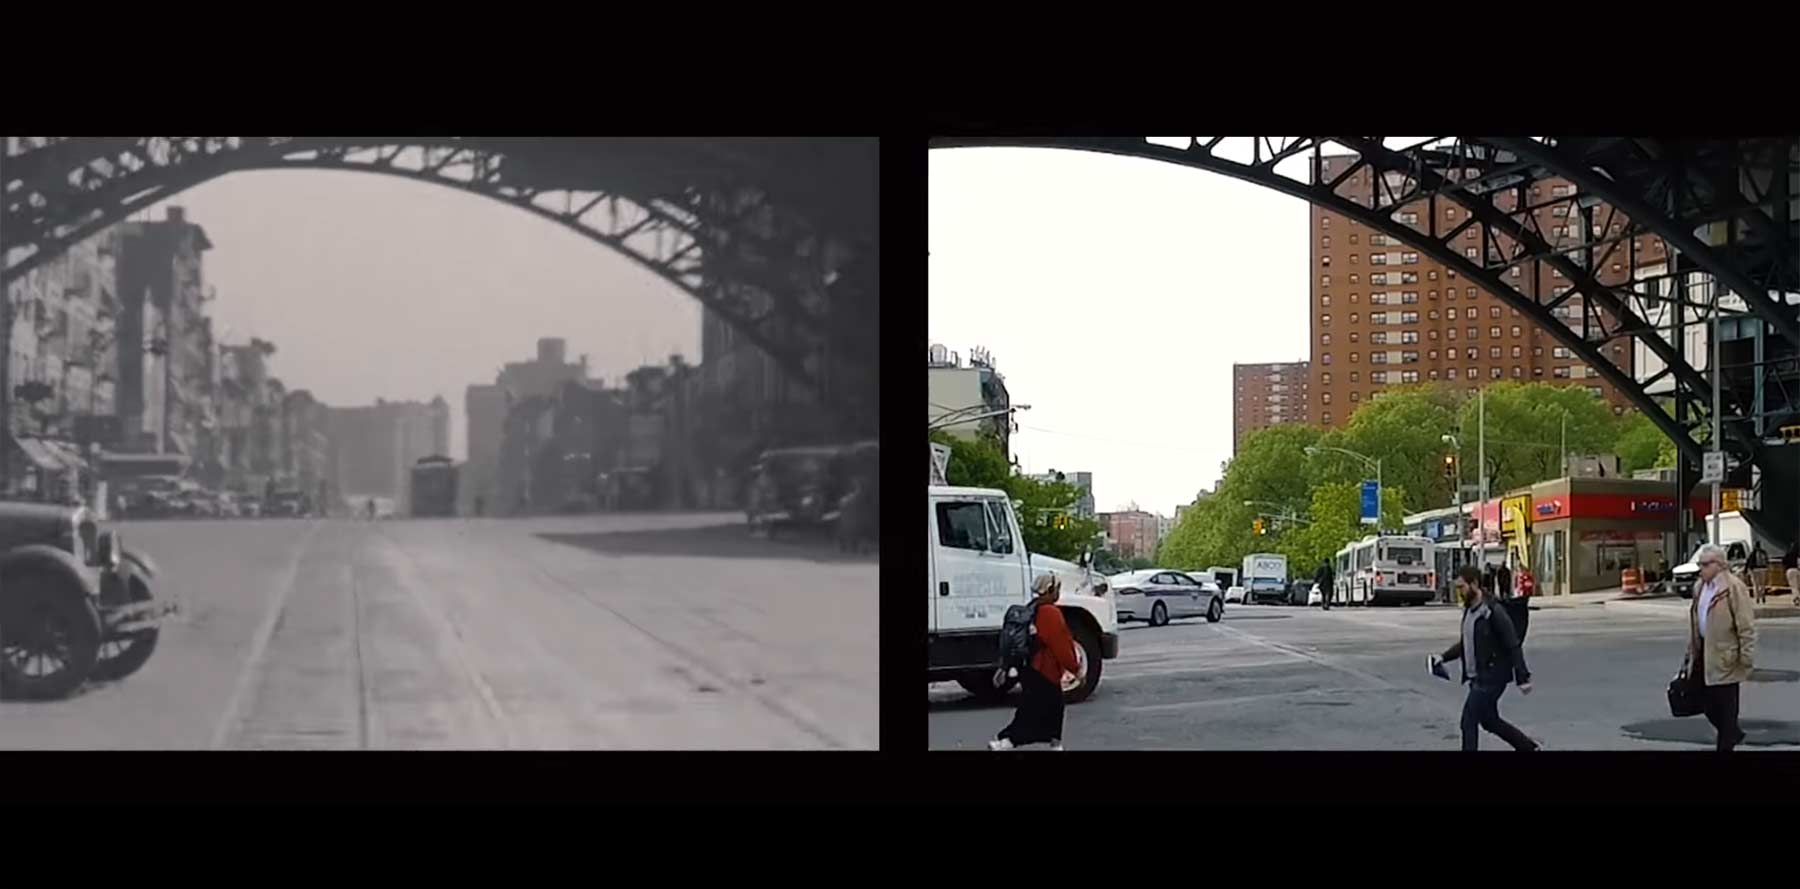 New York City: 1930 vs. Heute